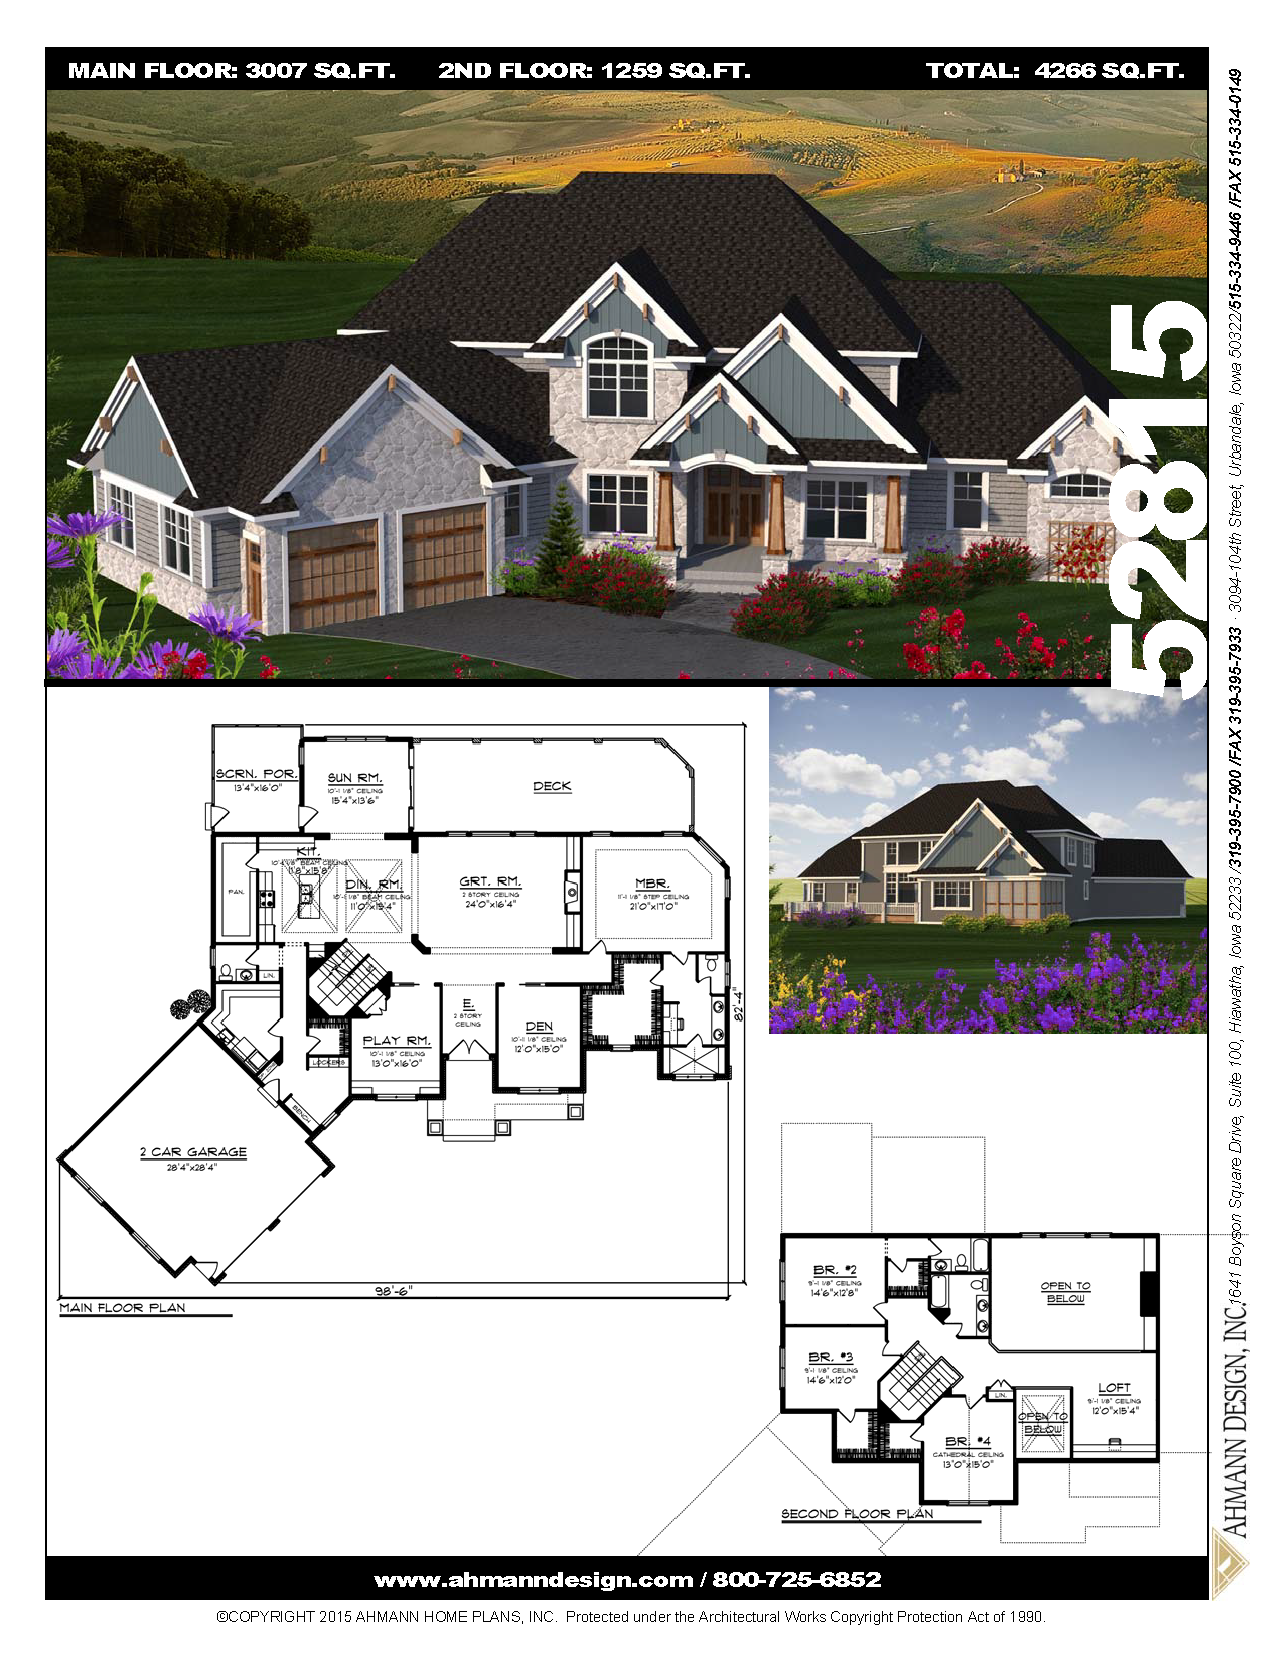 52815 Dream House Plans House Plans Sims House Design